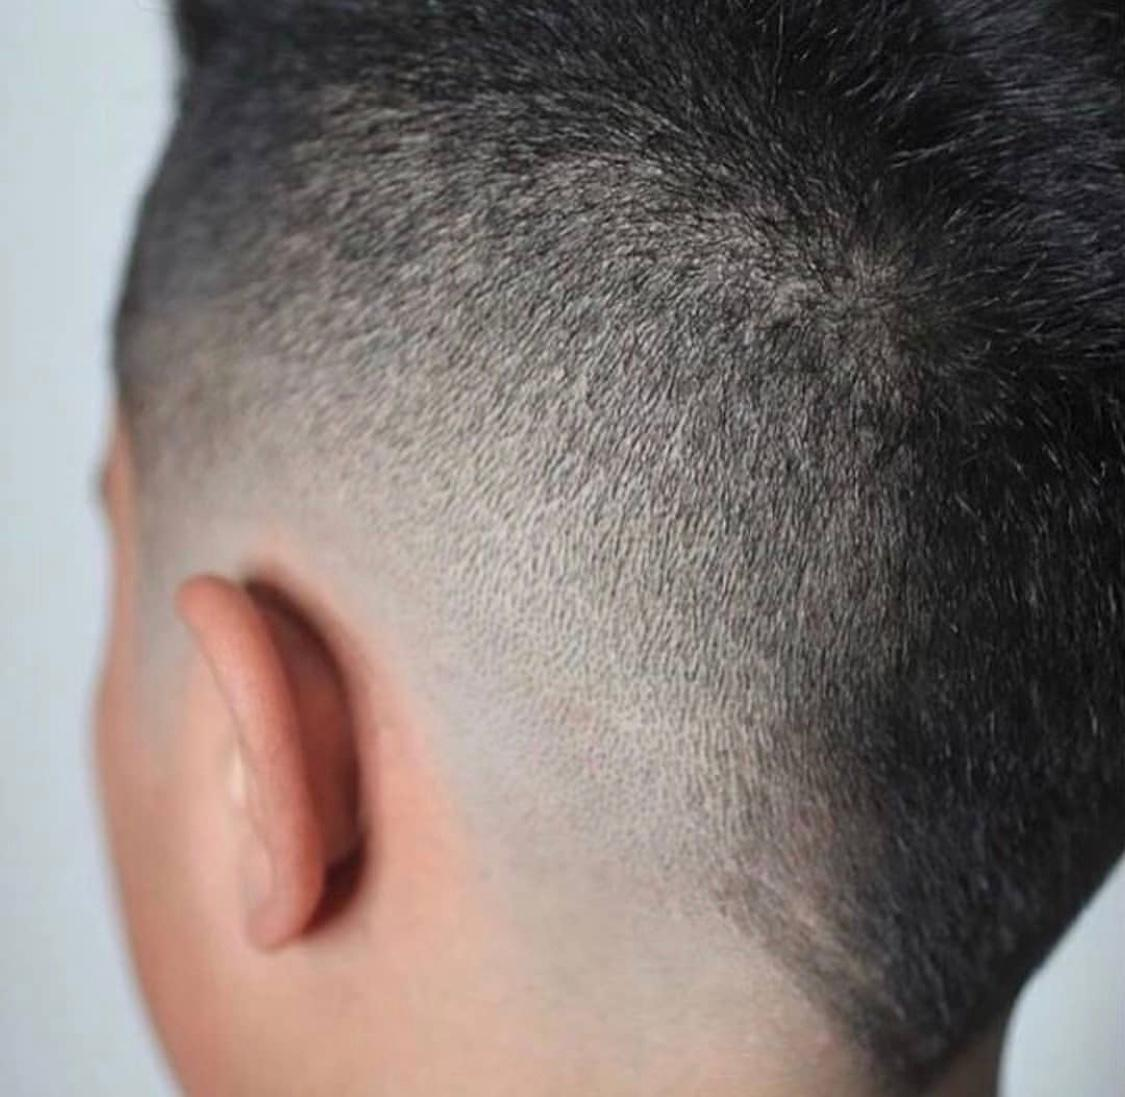 Sport Clips Haircuts of New Port Richey image 18